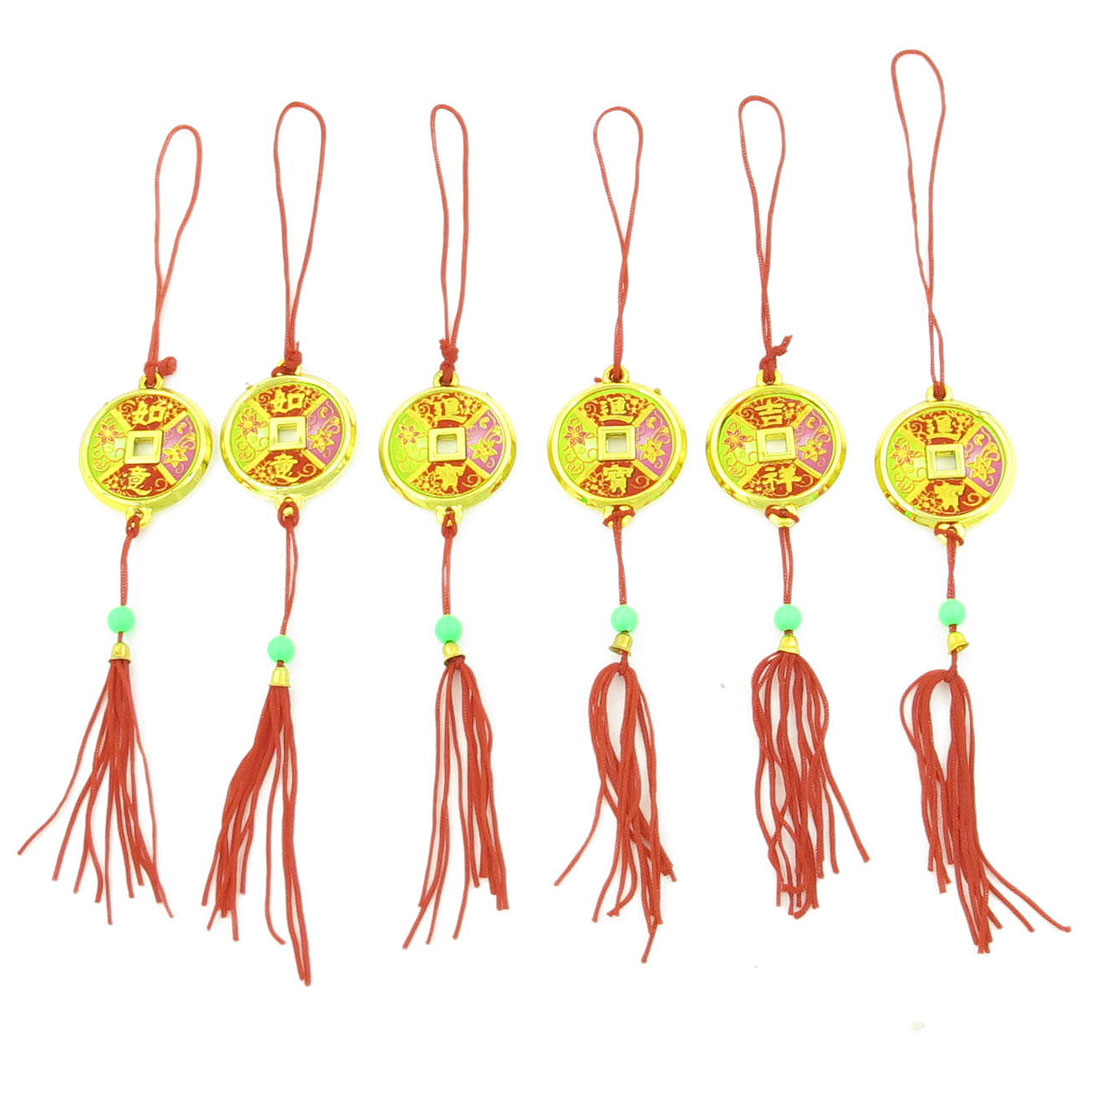 Colorful Copper Cash w Red Tassel Christmas Hanging Pendant 6 Pcs